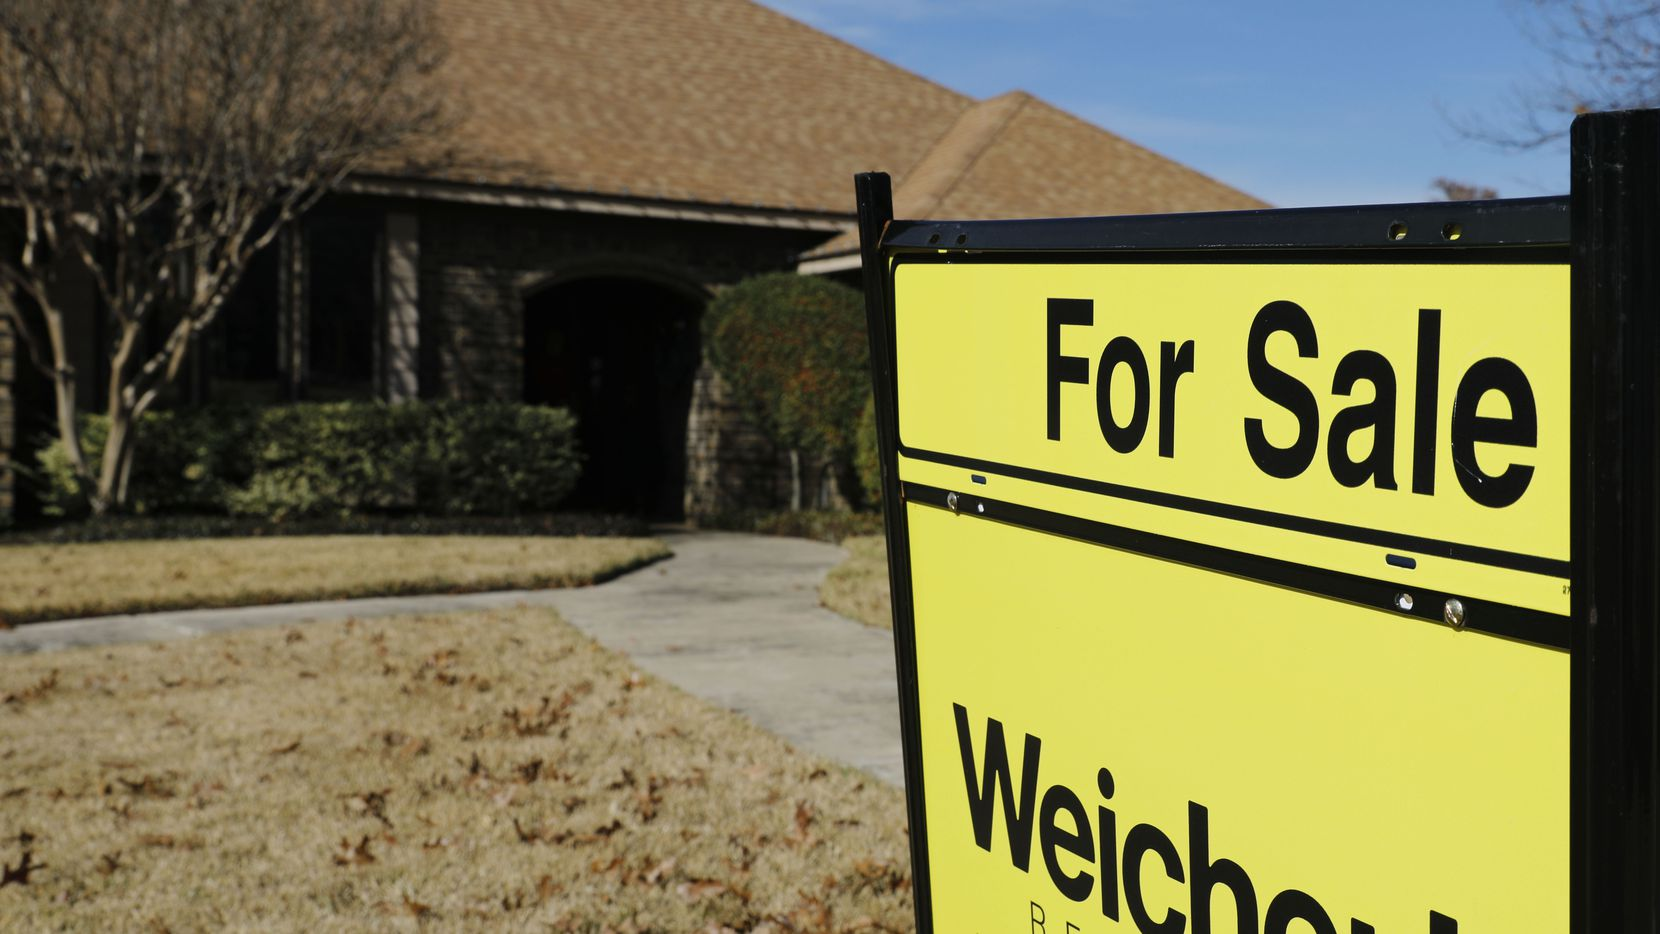 Dallas-area home prices were up 3% from a year ago in the latest S&P/Case-Shiller home price report.